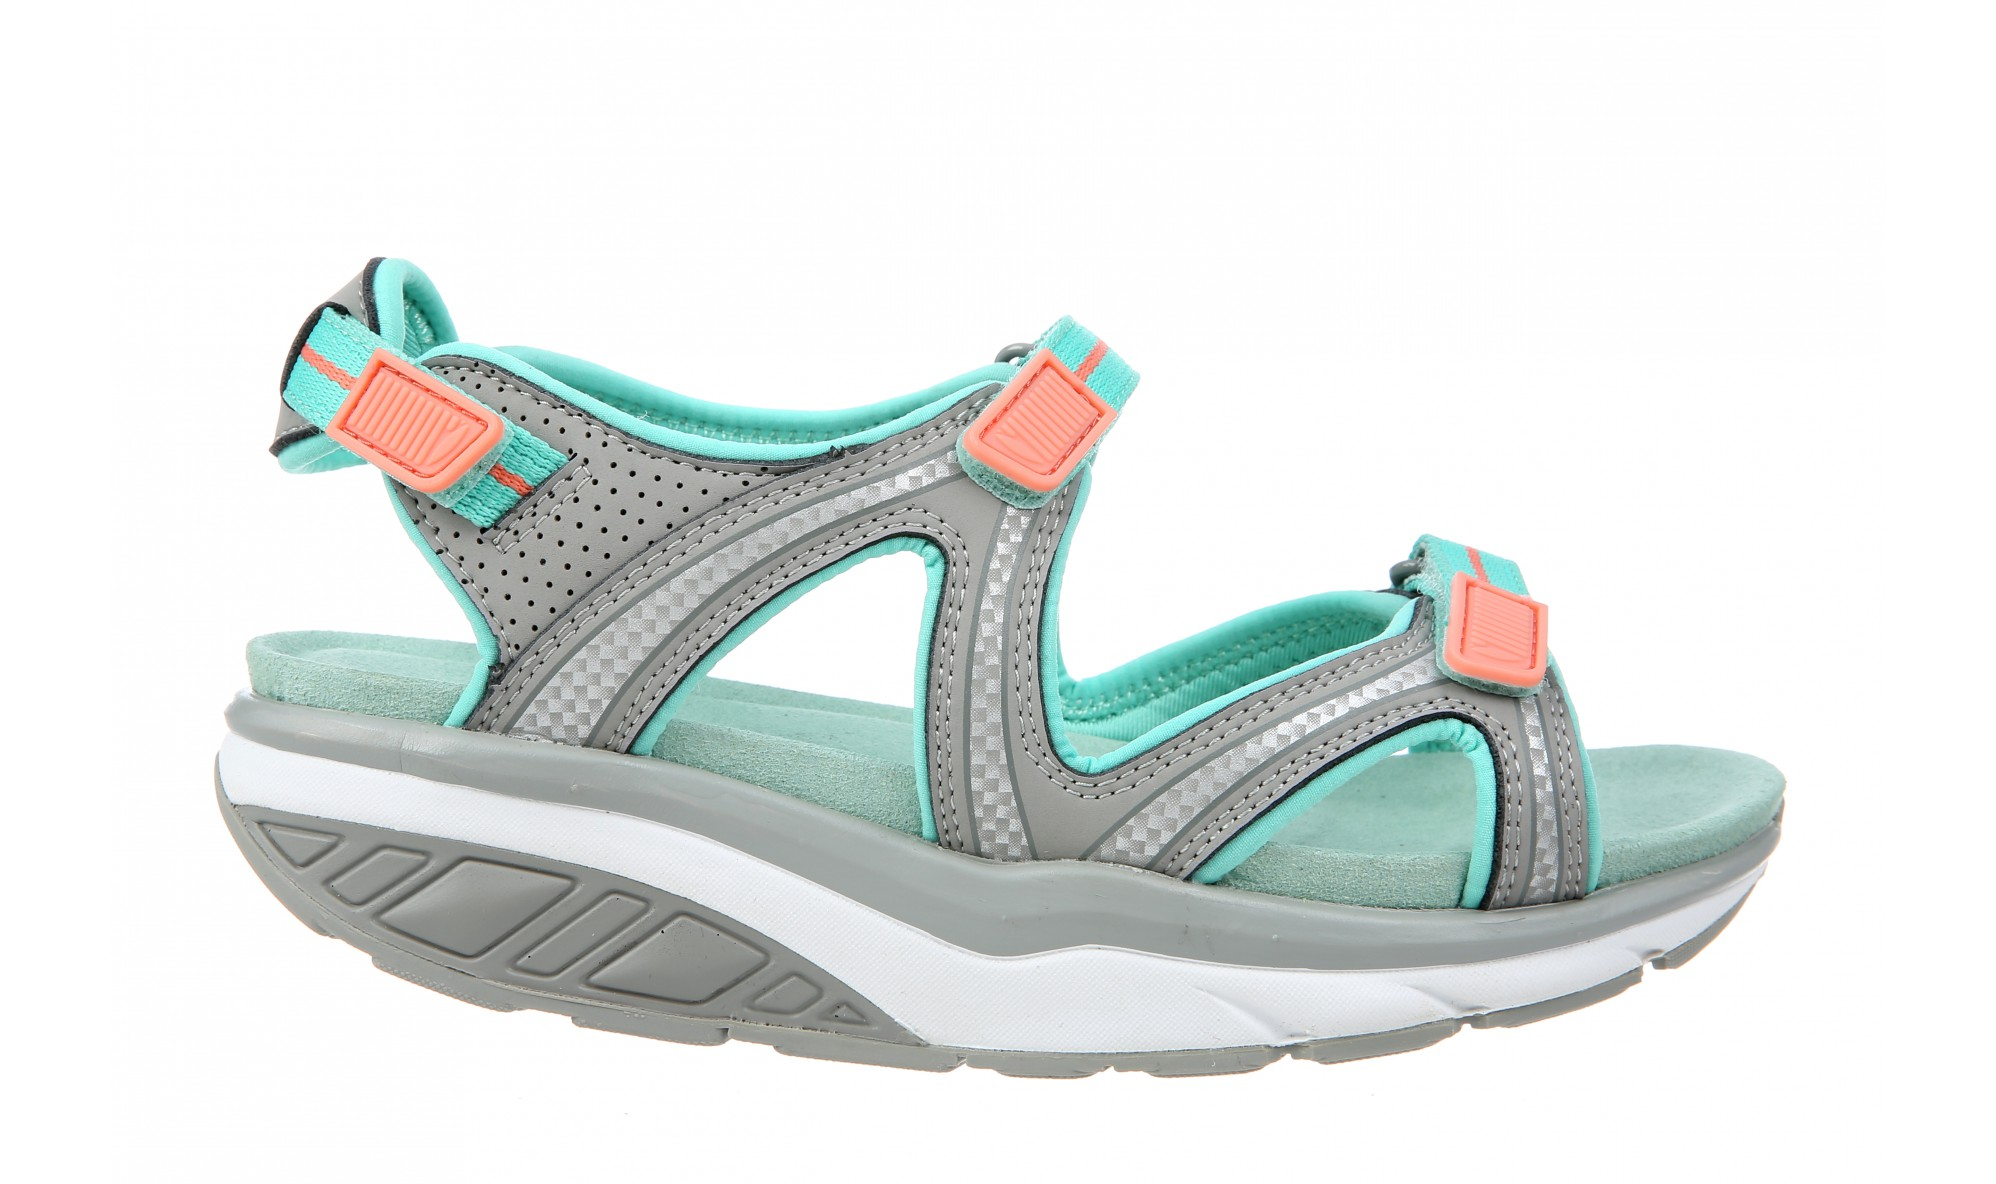 MBT Lila 6 Sport Women's Gray / Teal / Peach / White